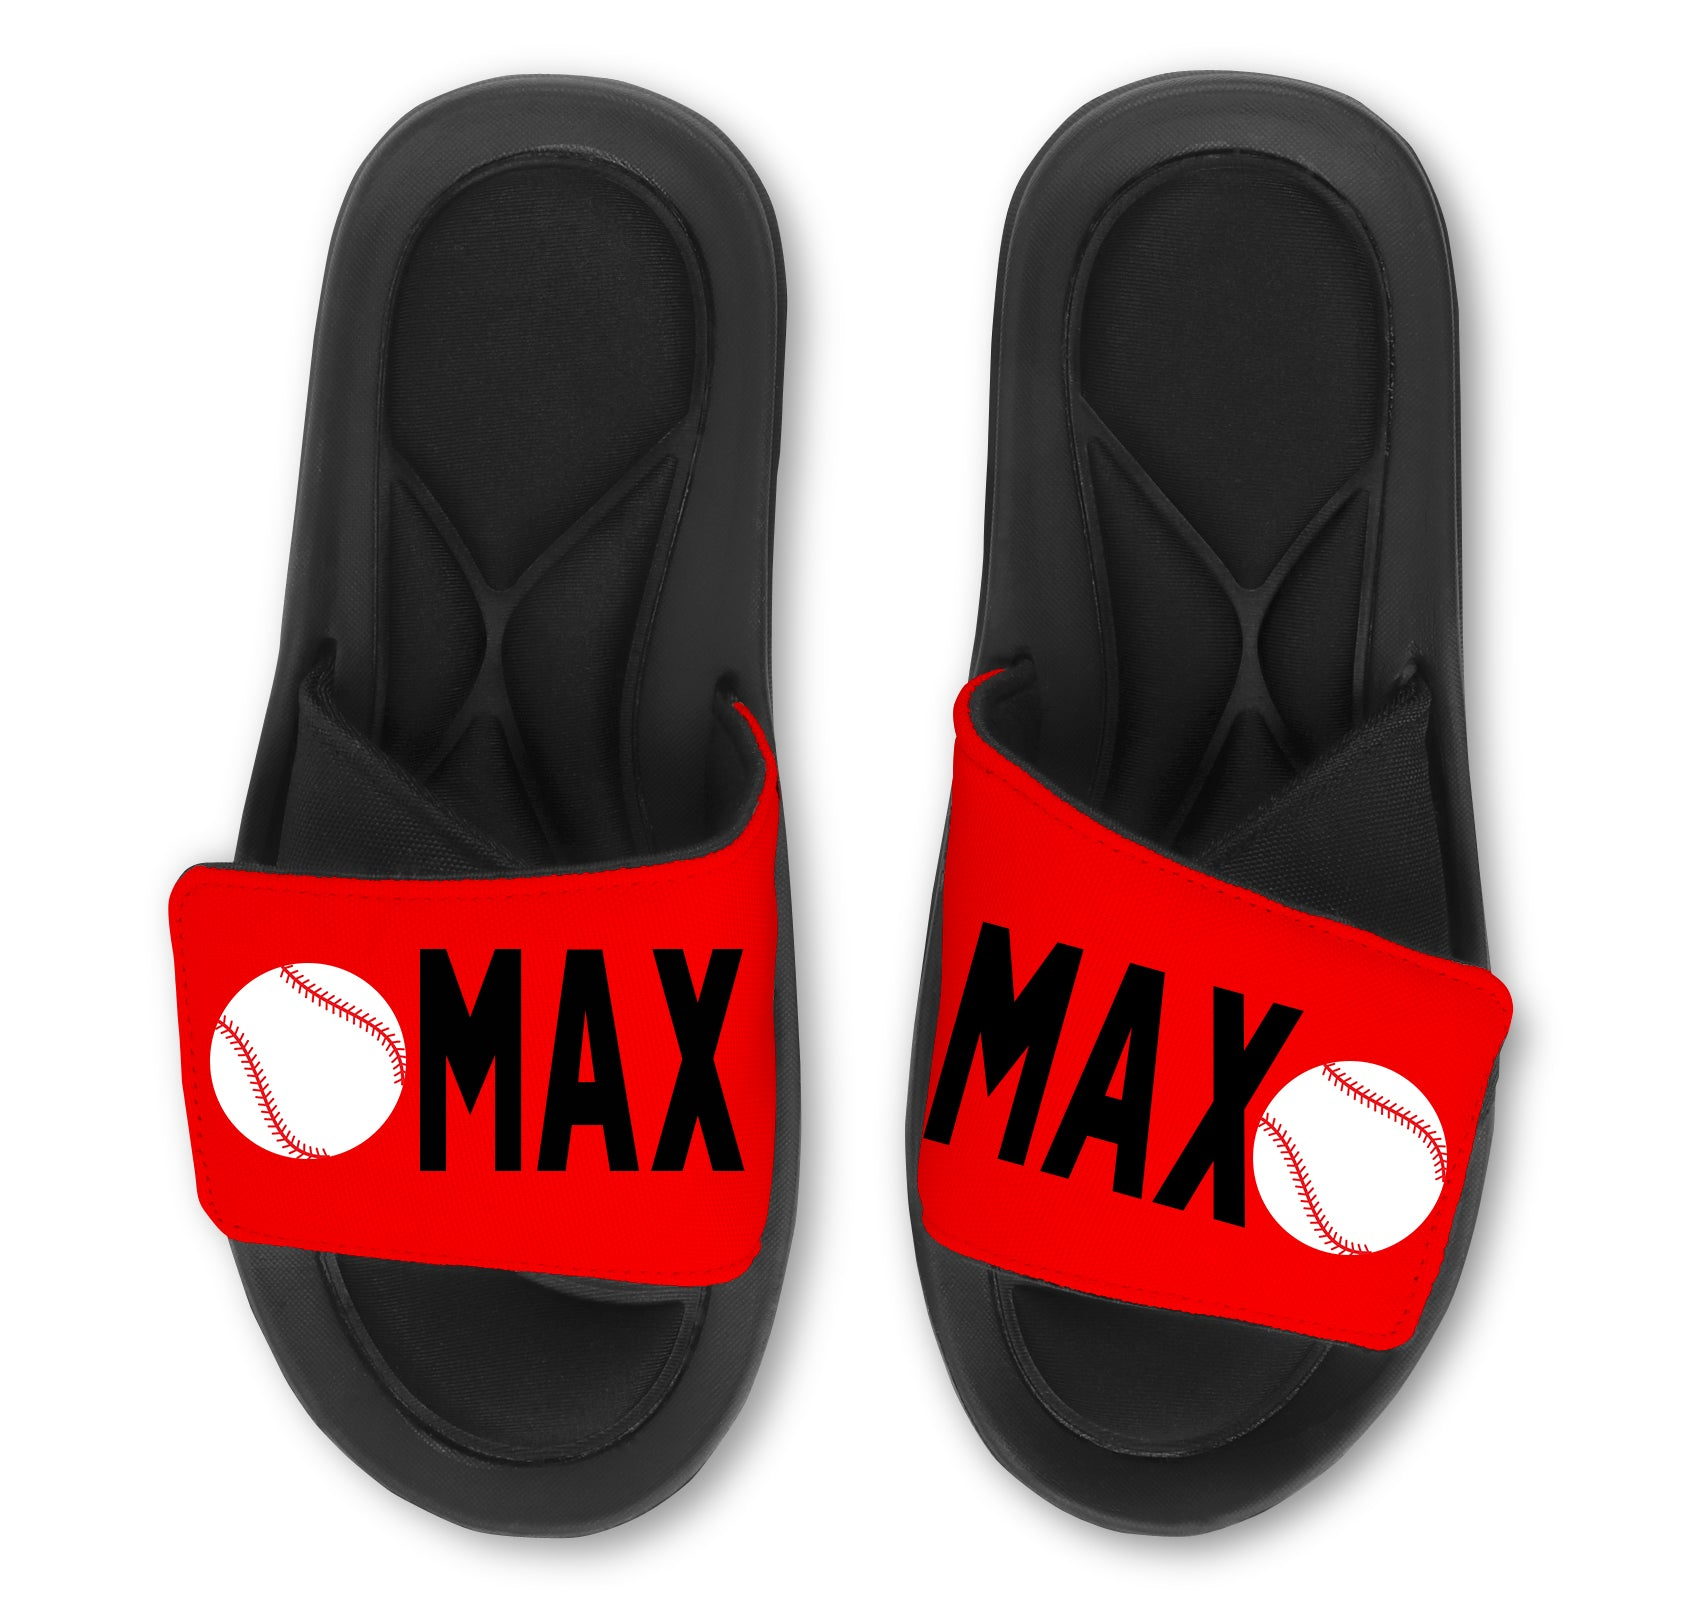 Baseball Slides (Single Baseball) - Customize with Your Name & Number